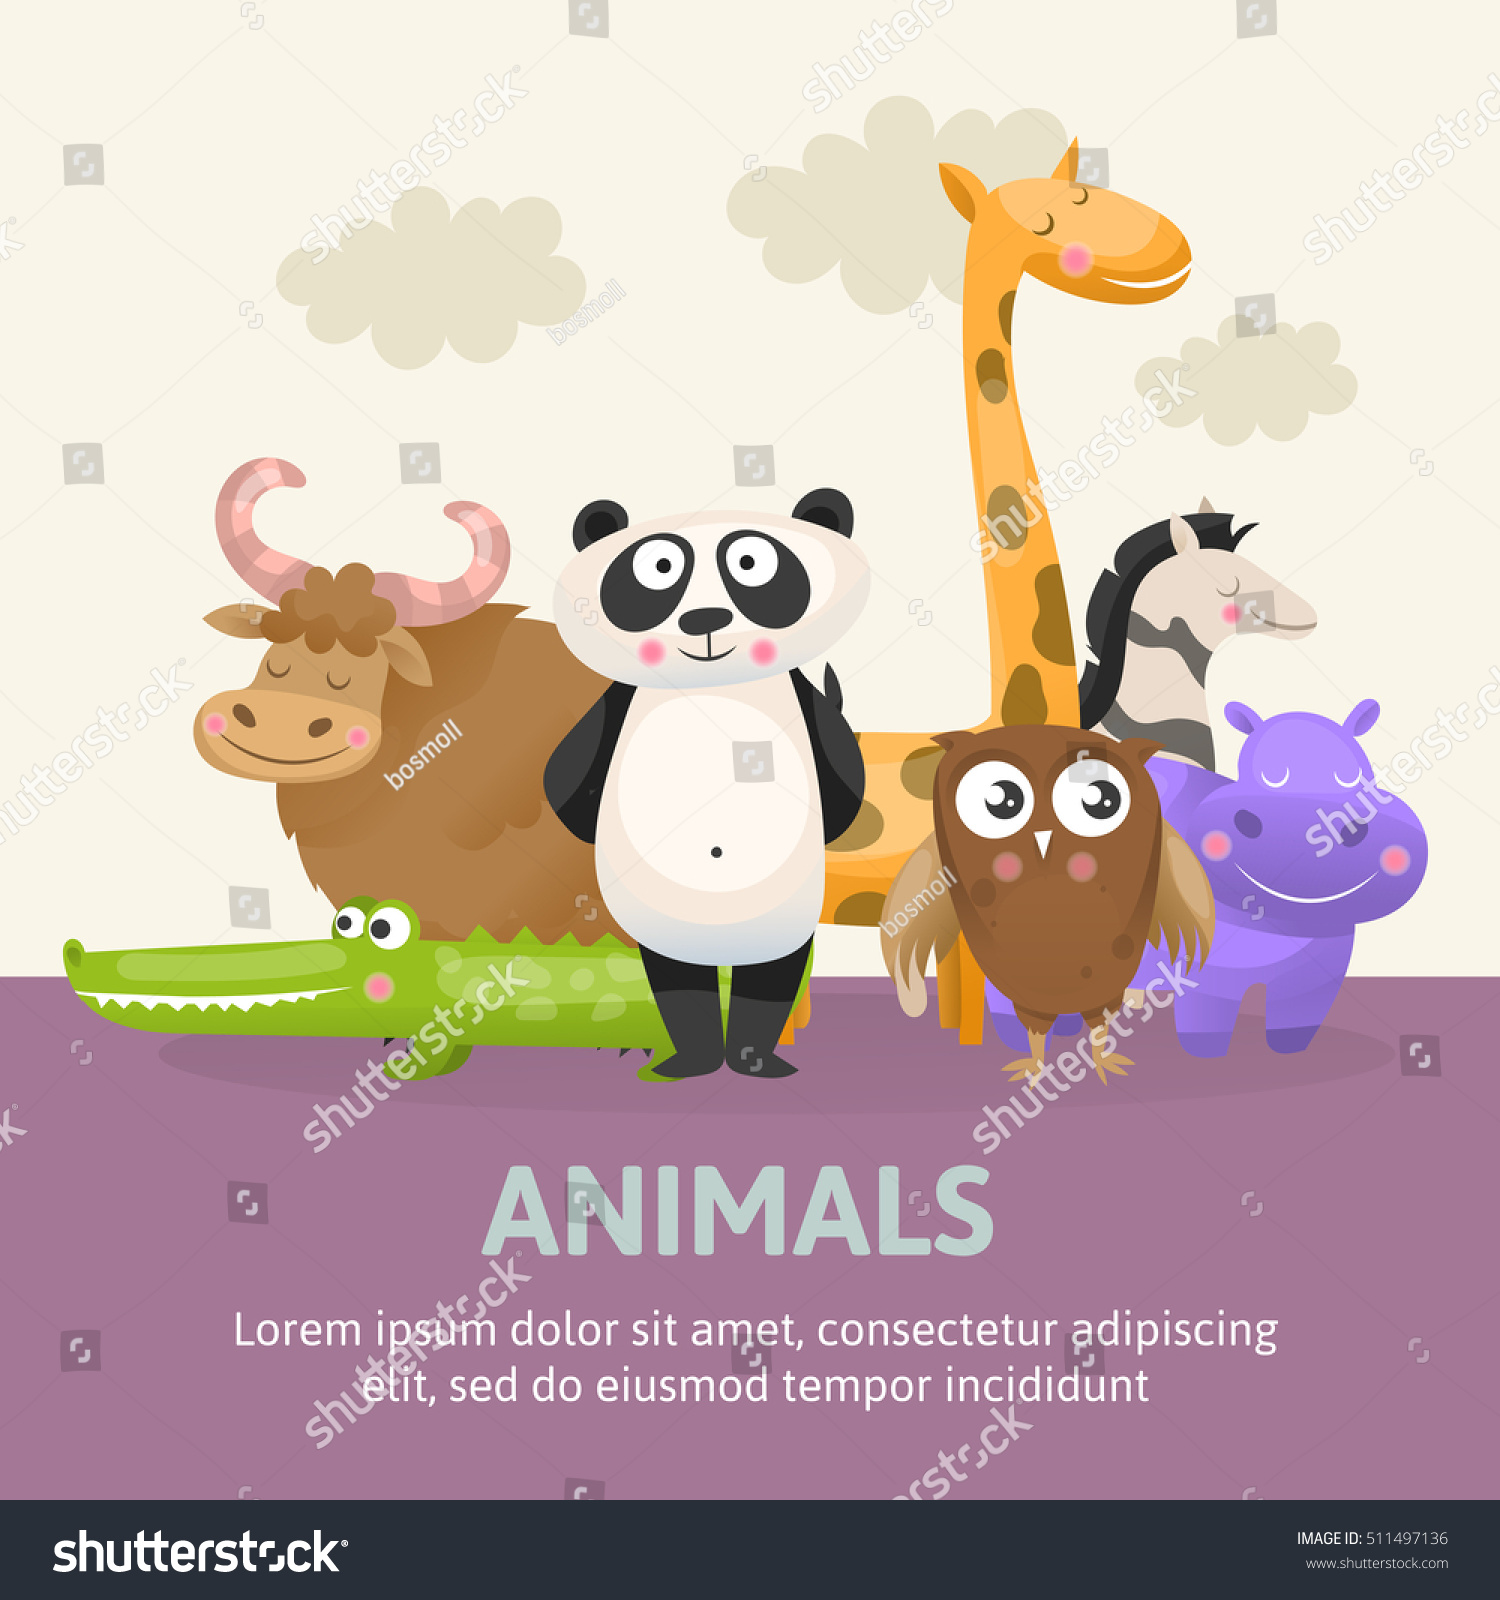 Zoo poster design - Poster With Zoo Animals Vector